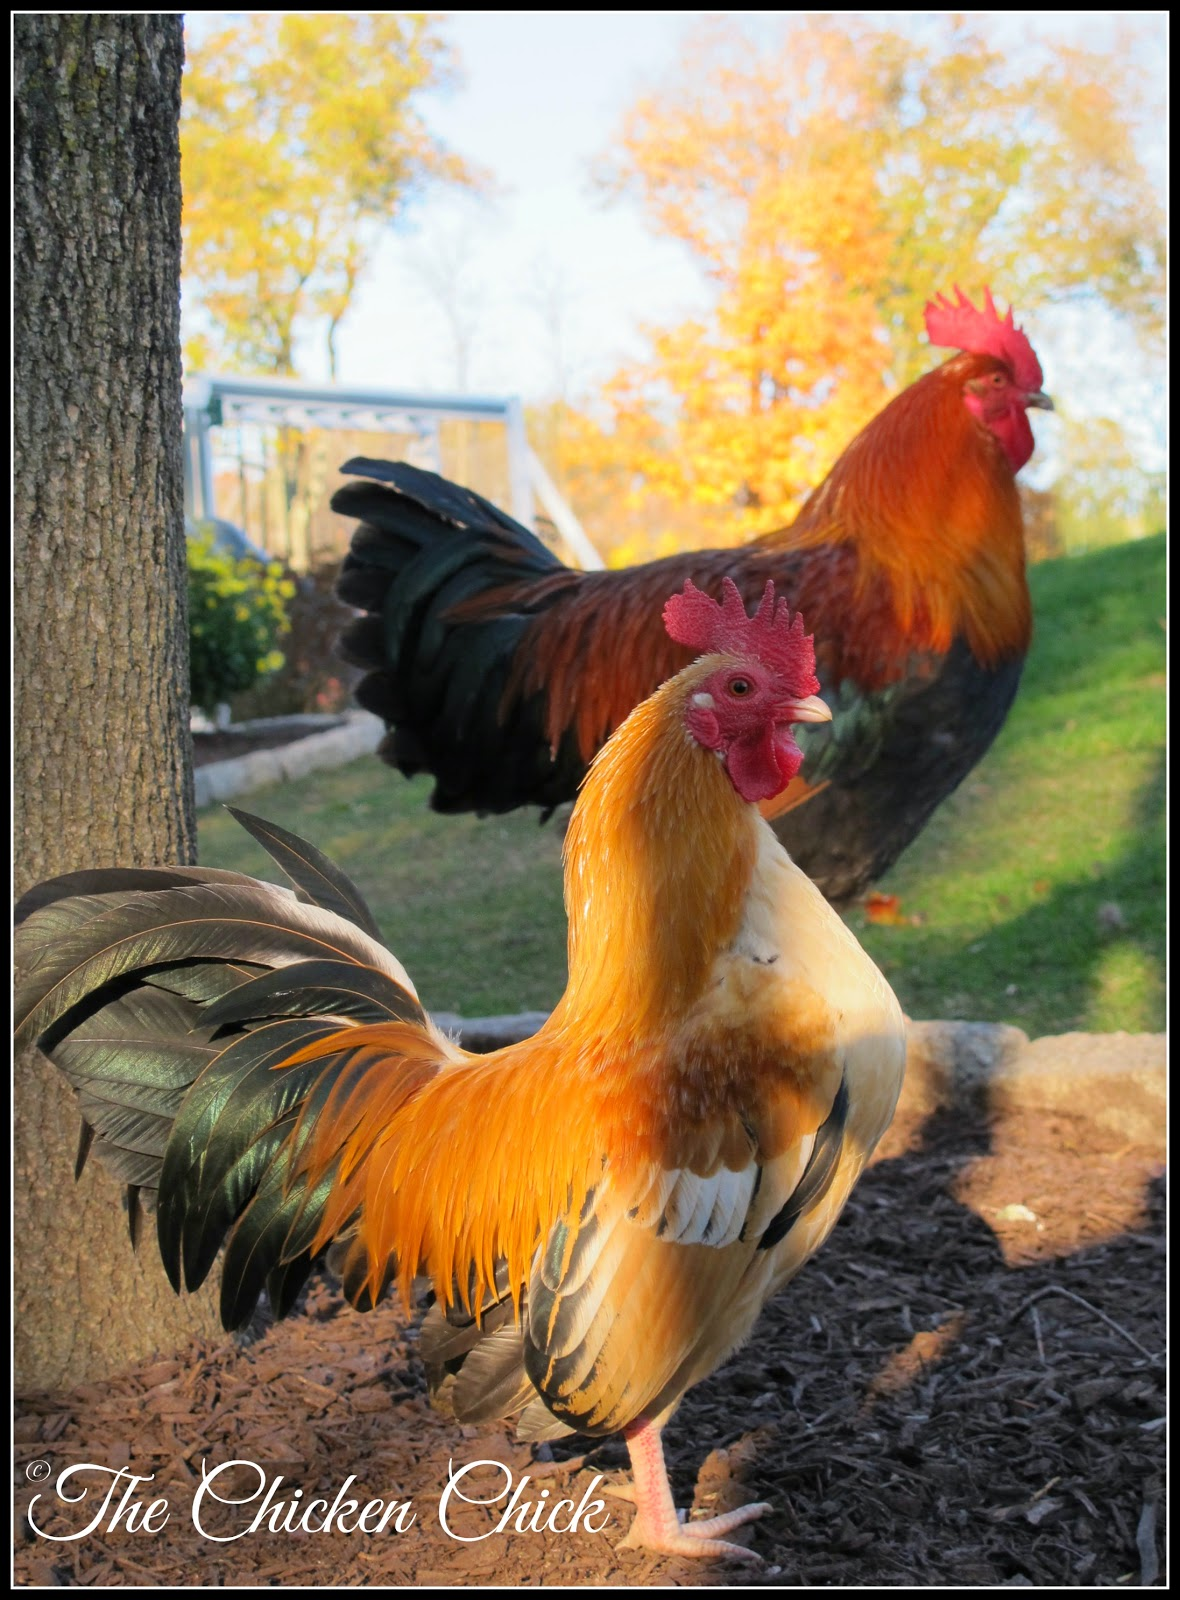 Caesar, Serama rooster & Samson, Red Dorking cockerel